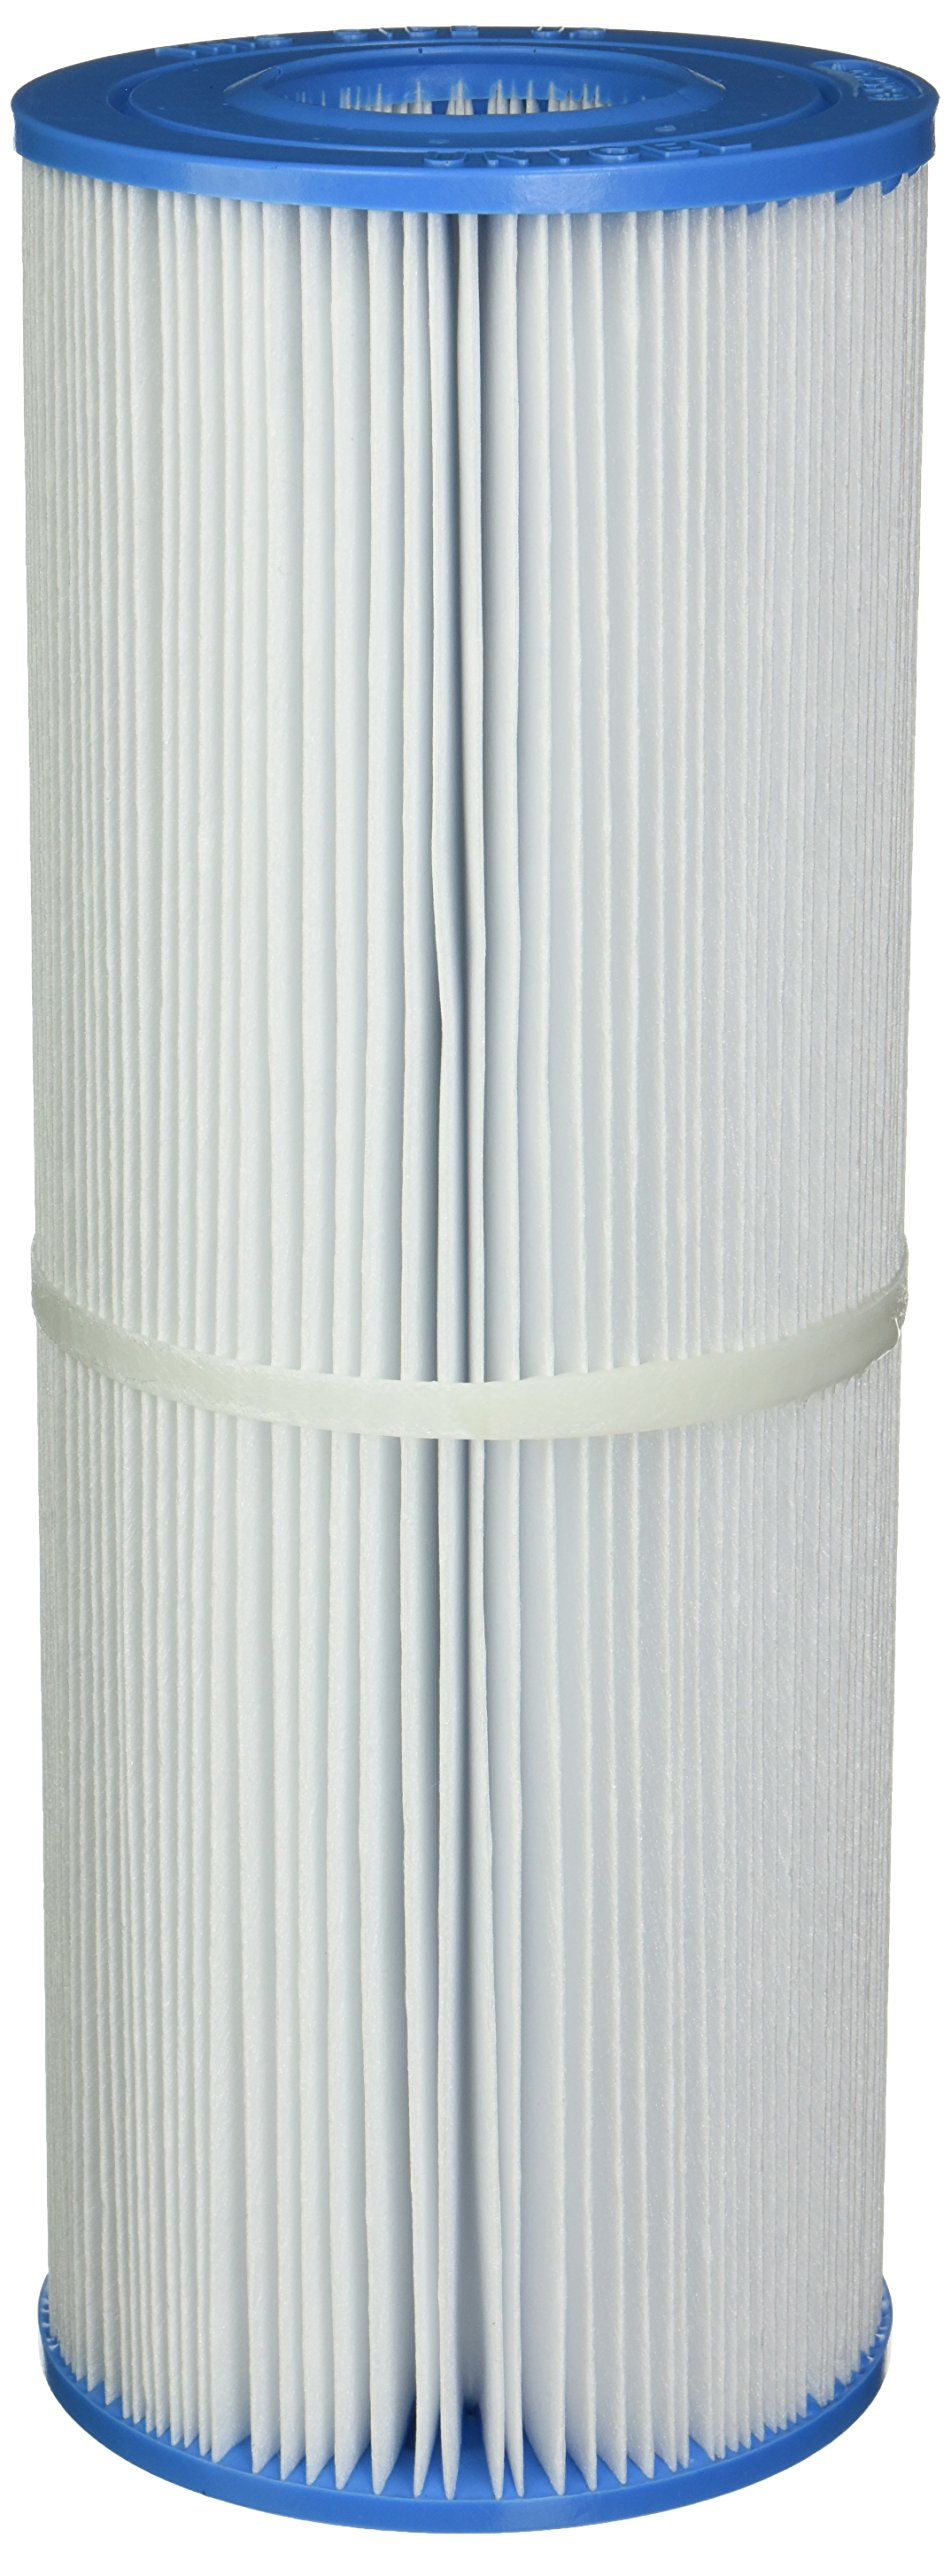 Unicel C-5625 Replacement Filter Cartridge for 25 Square Foot Jacuzzi CFR-25, In-line